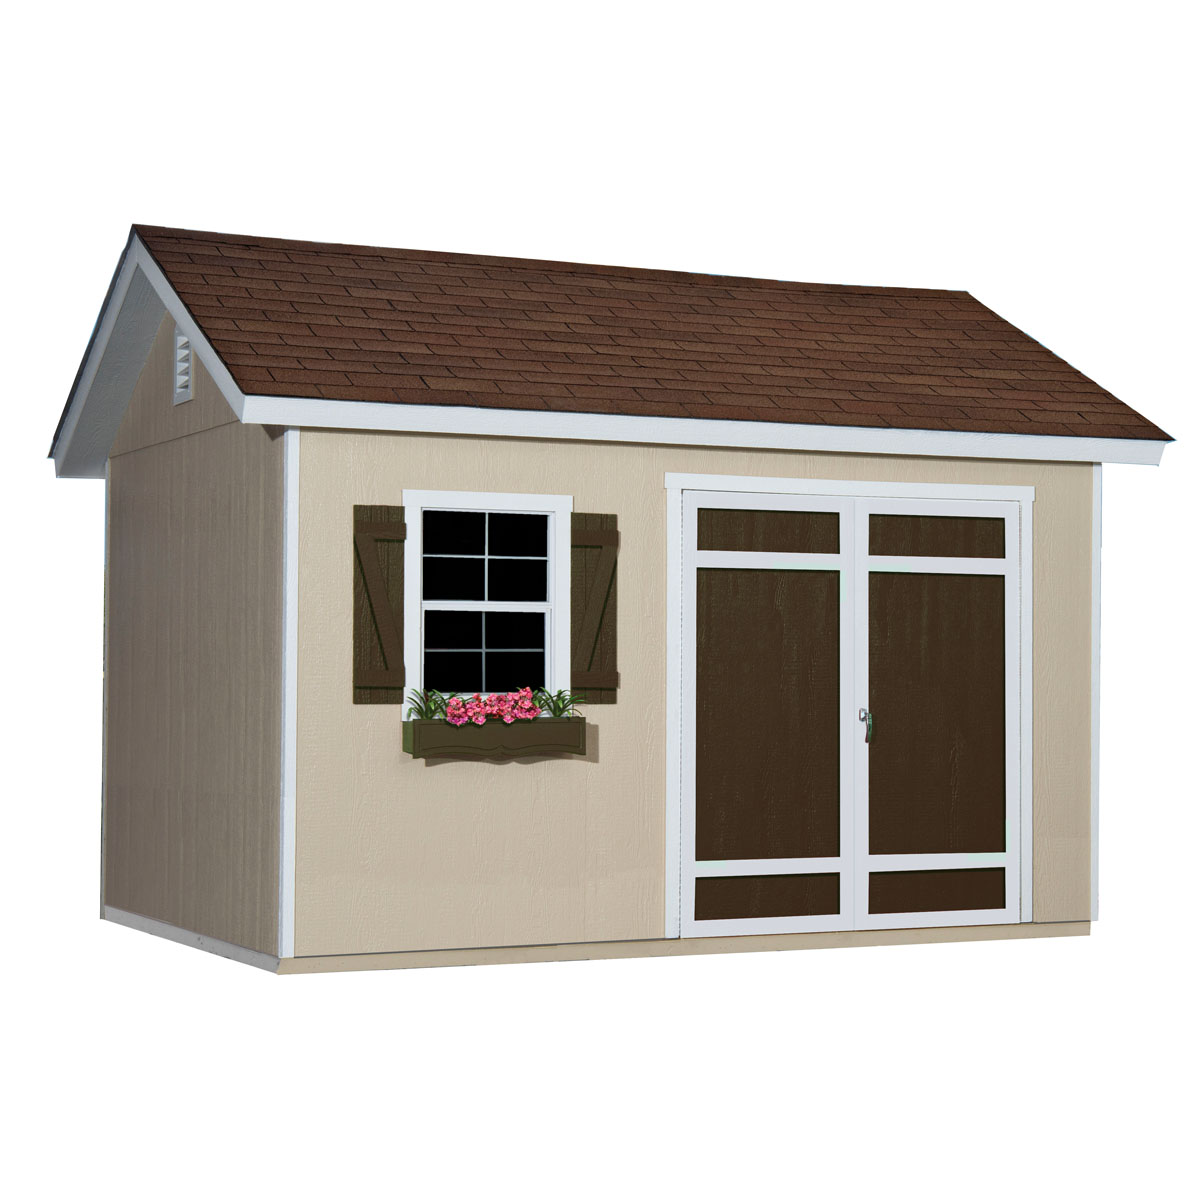 7ft. tall side walls provide &le vertical storage space for rakes shovels wheelbarrows  sc 1 st  Backyard Buildings & Garden Shed for Tool Storage u0026 More | 12x10 Glendale